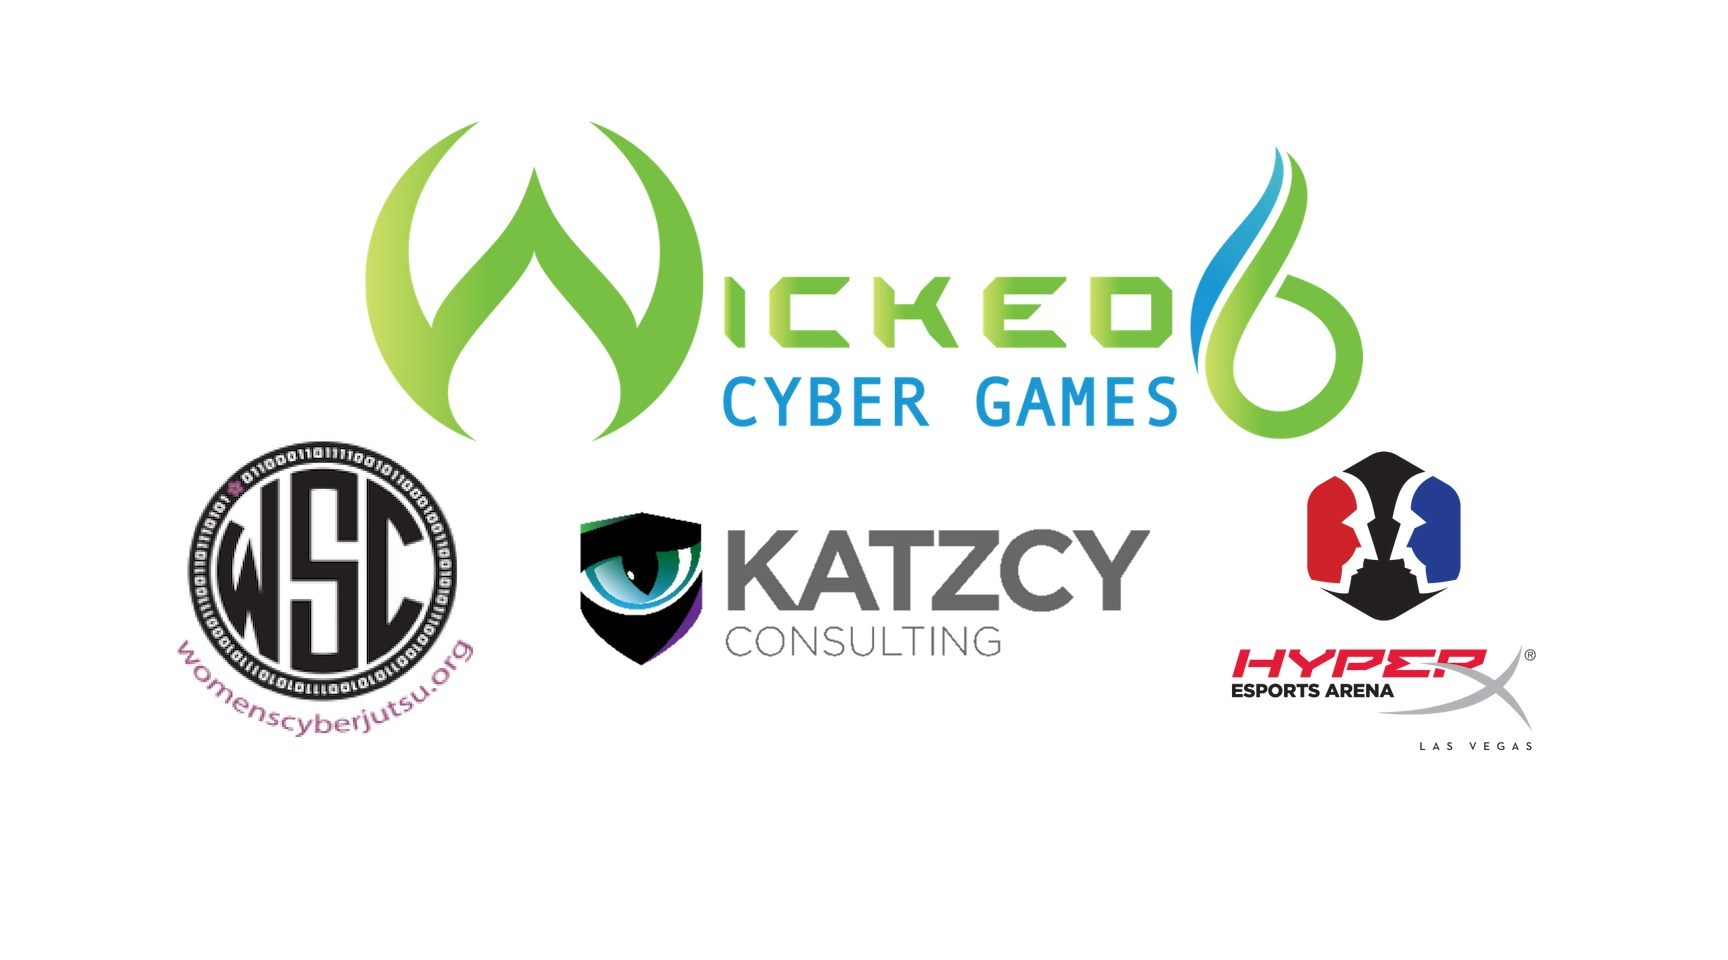 Wicked6 Partners